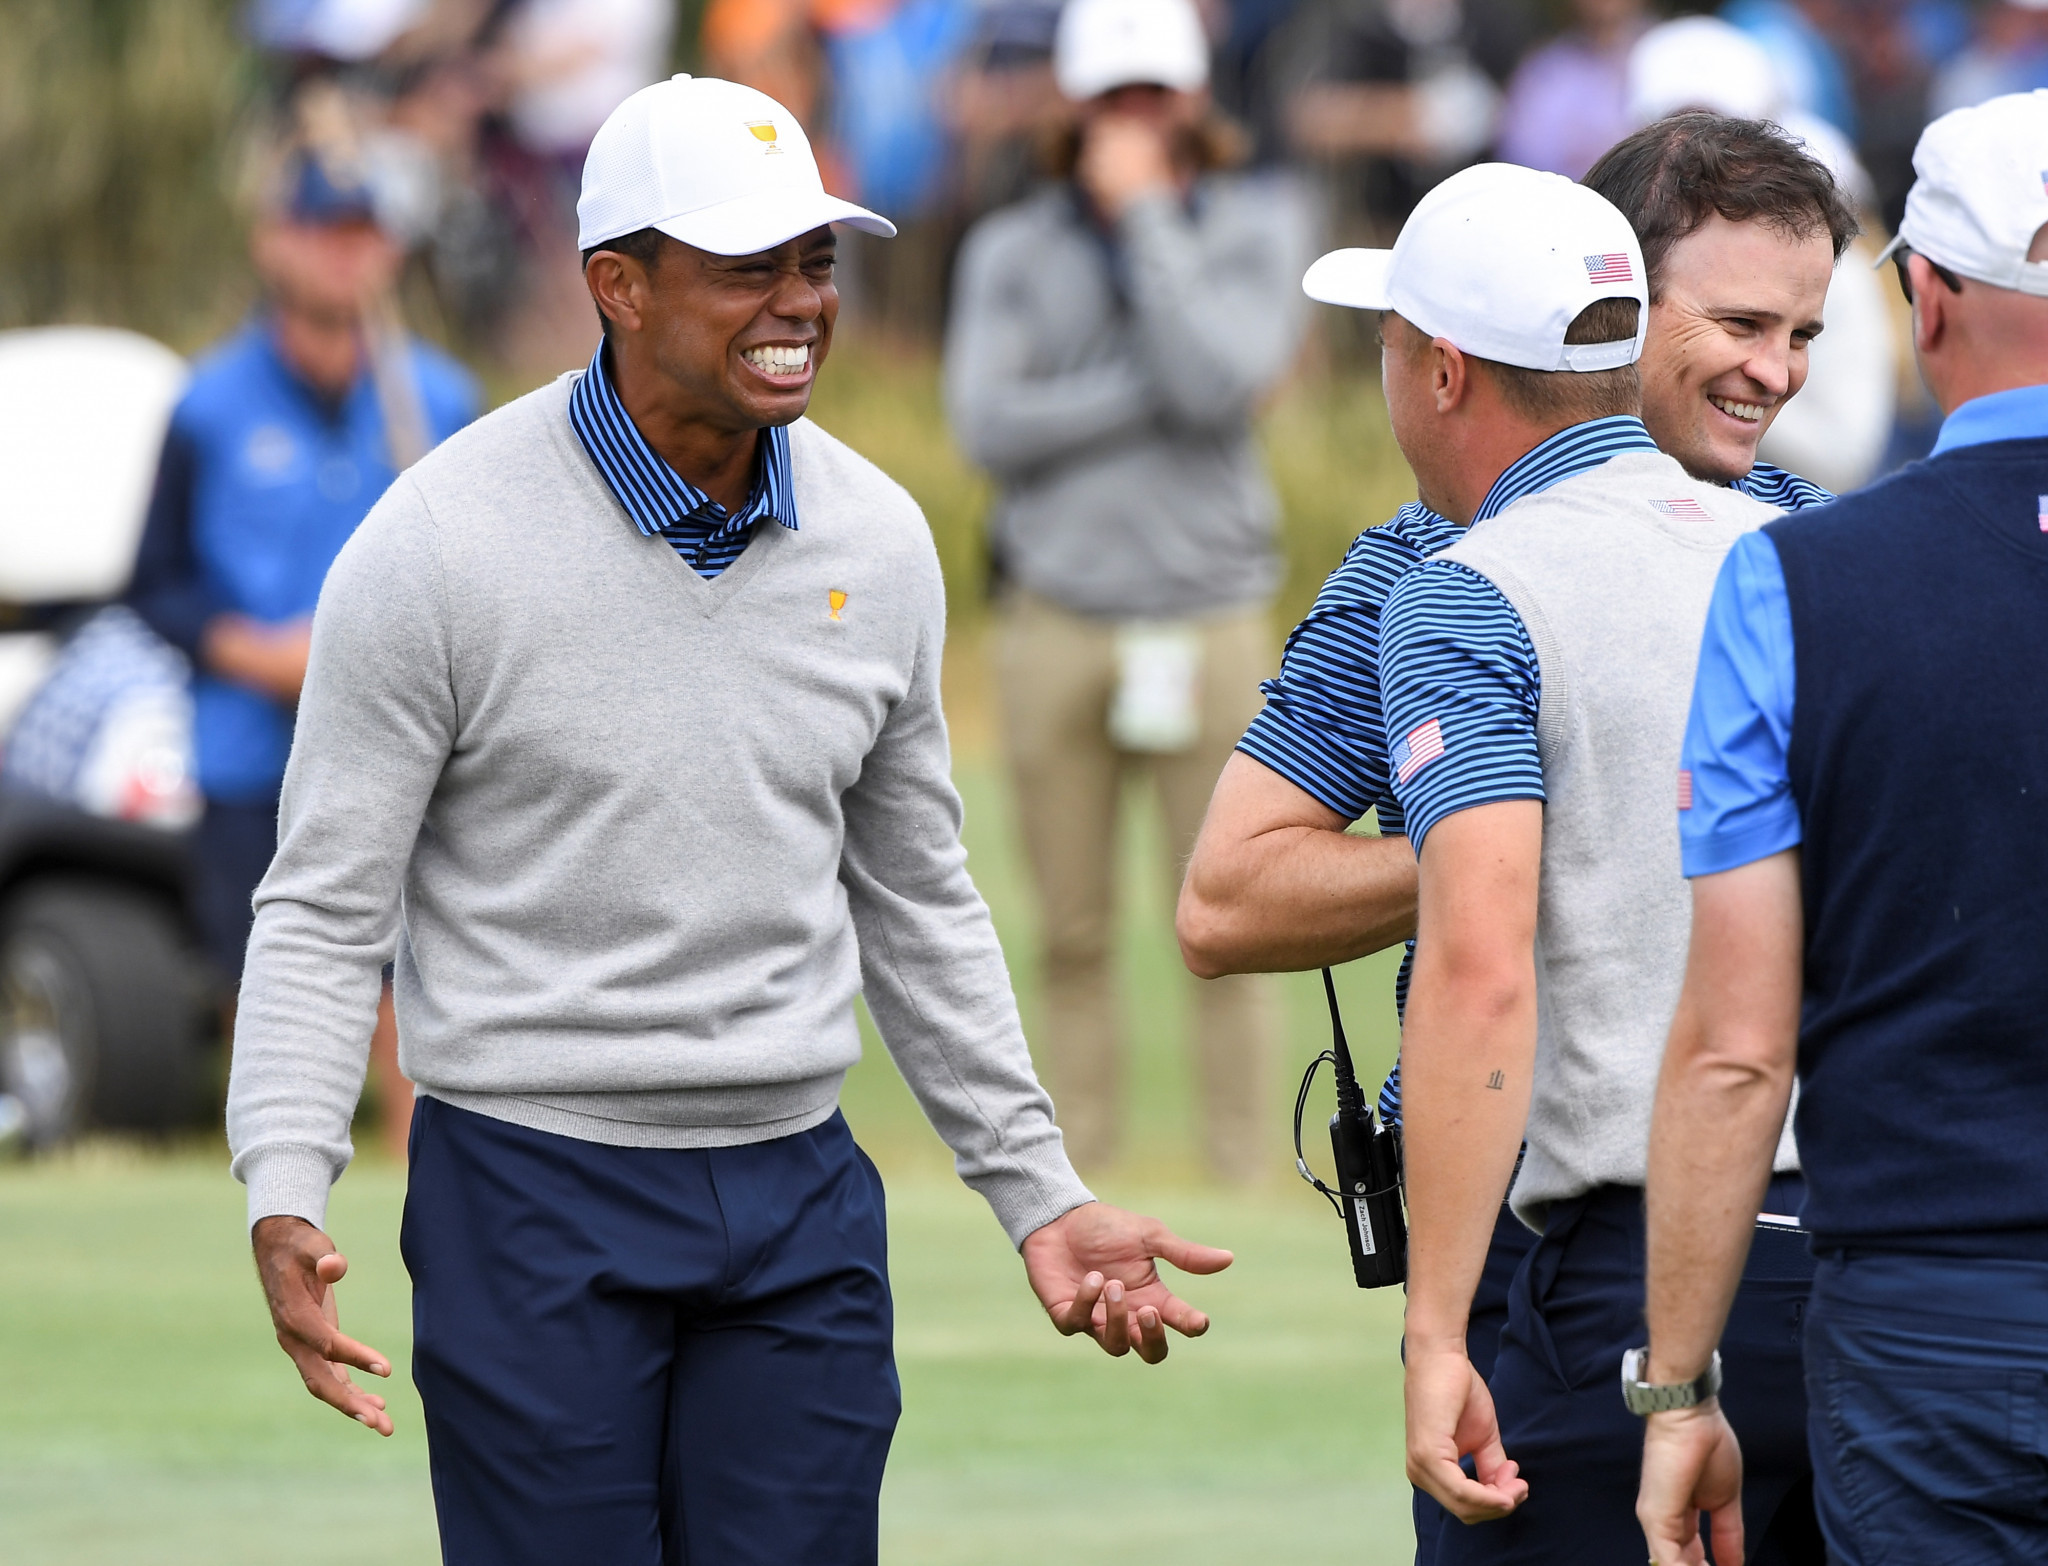 Player-captain Woods inspires United States fightback in Presidents Cup foursomes